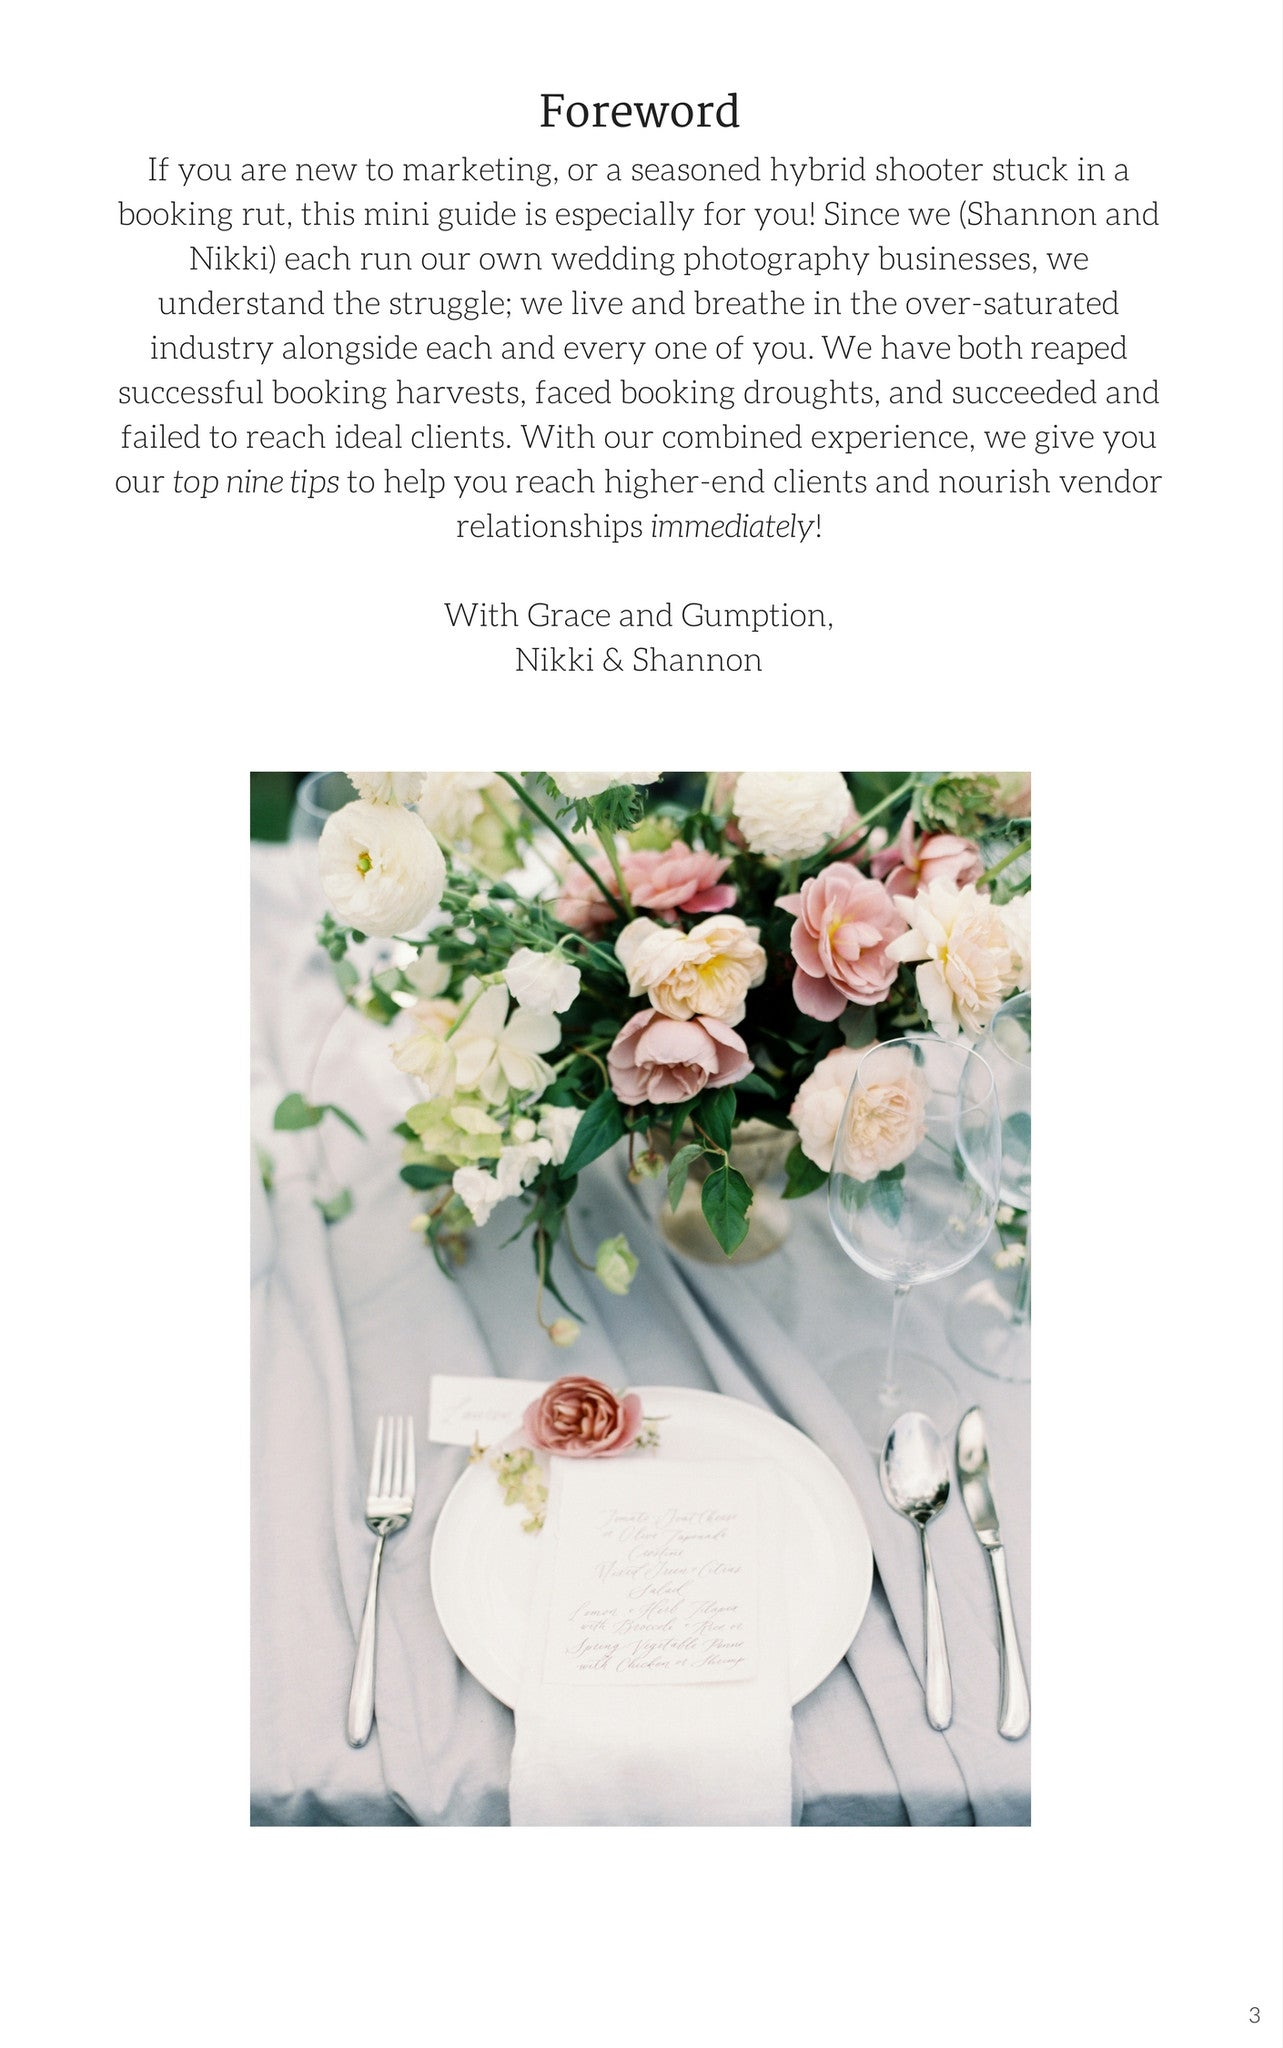 Mini Guide: High-end Marketing for the Hybrid Wedding Photographer